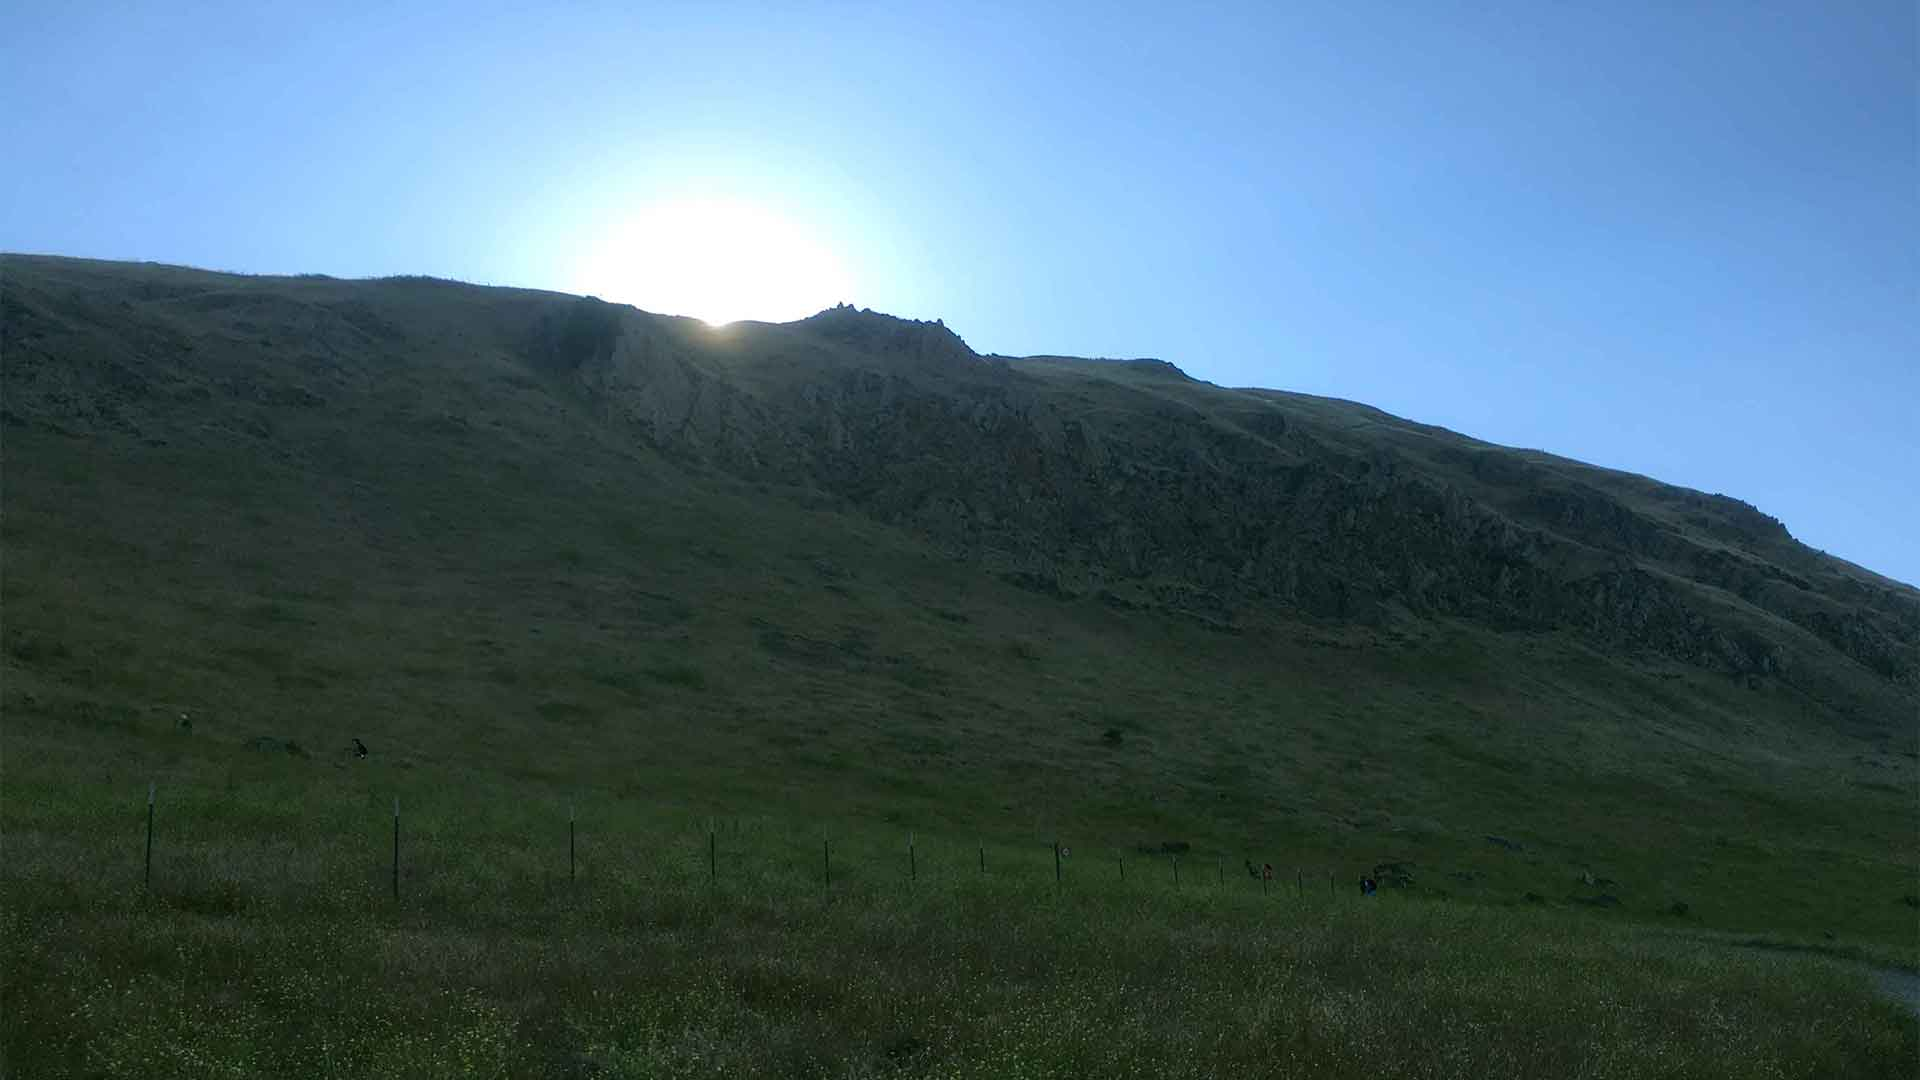 Photos from To Mission Peak 18